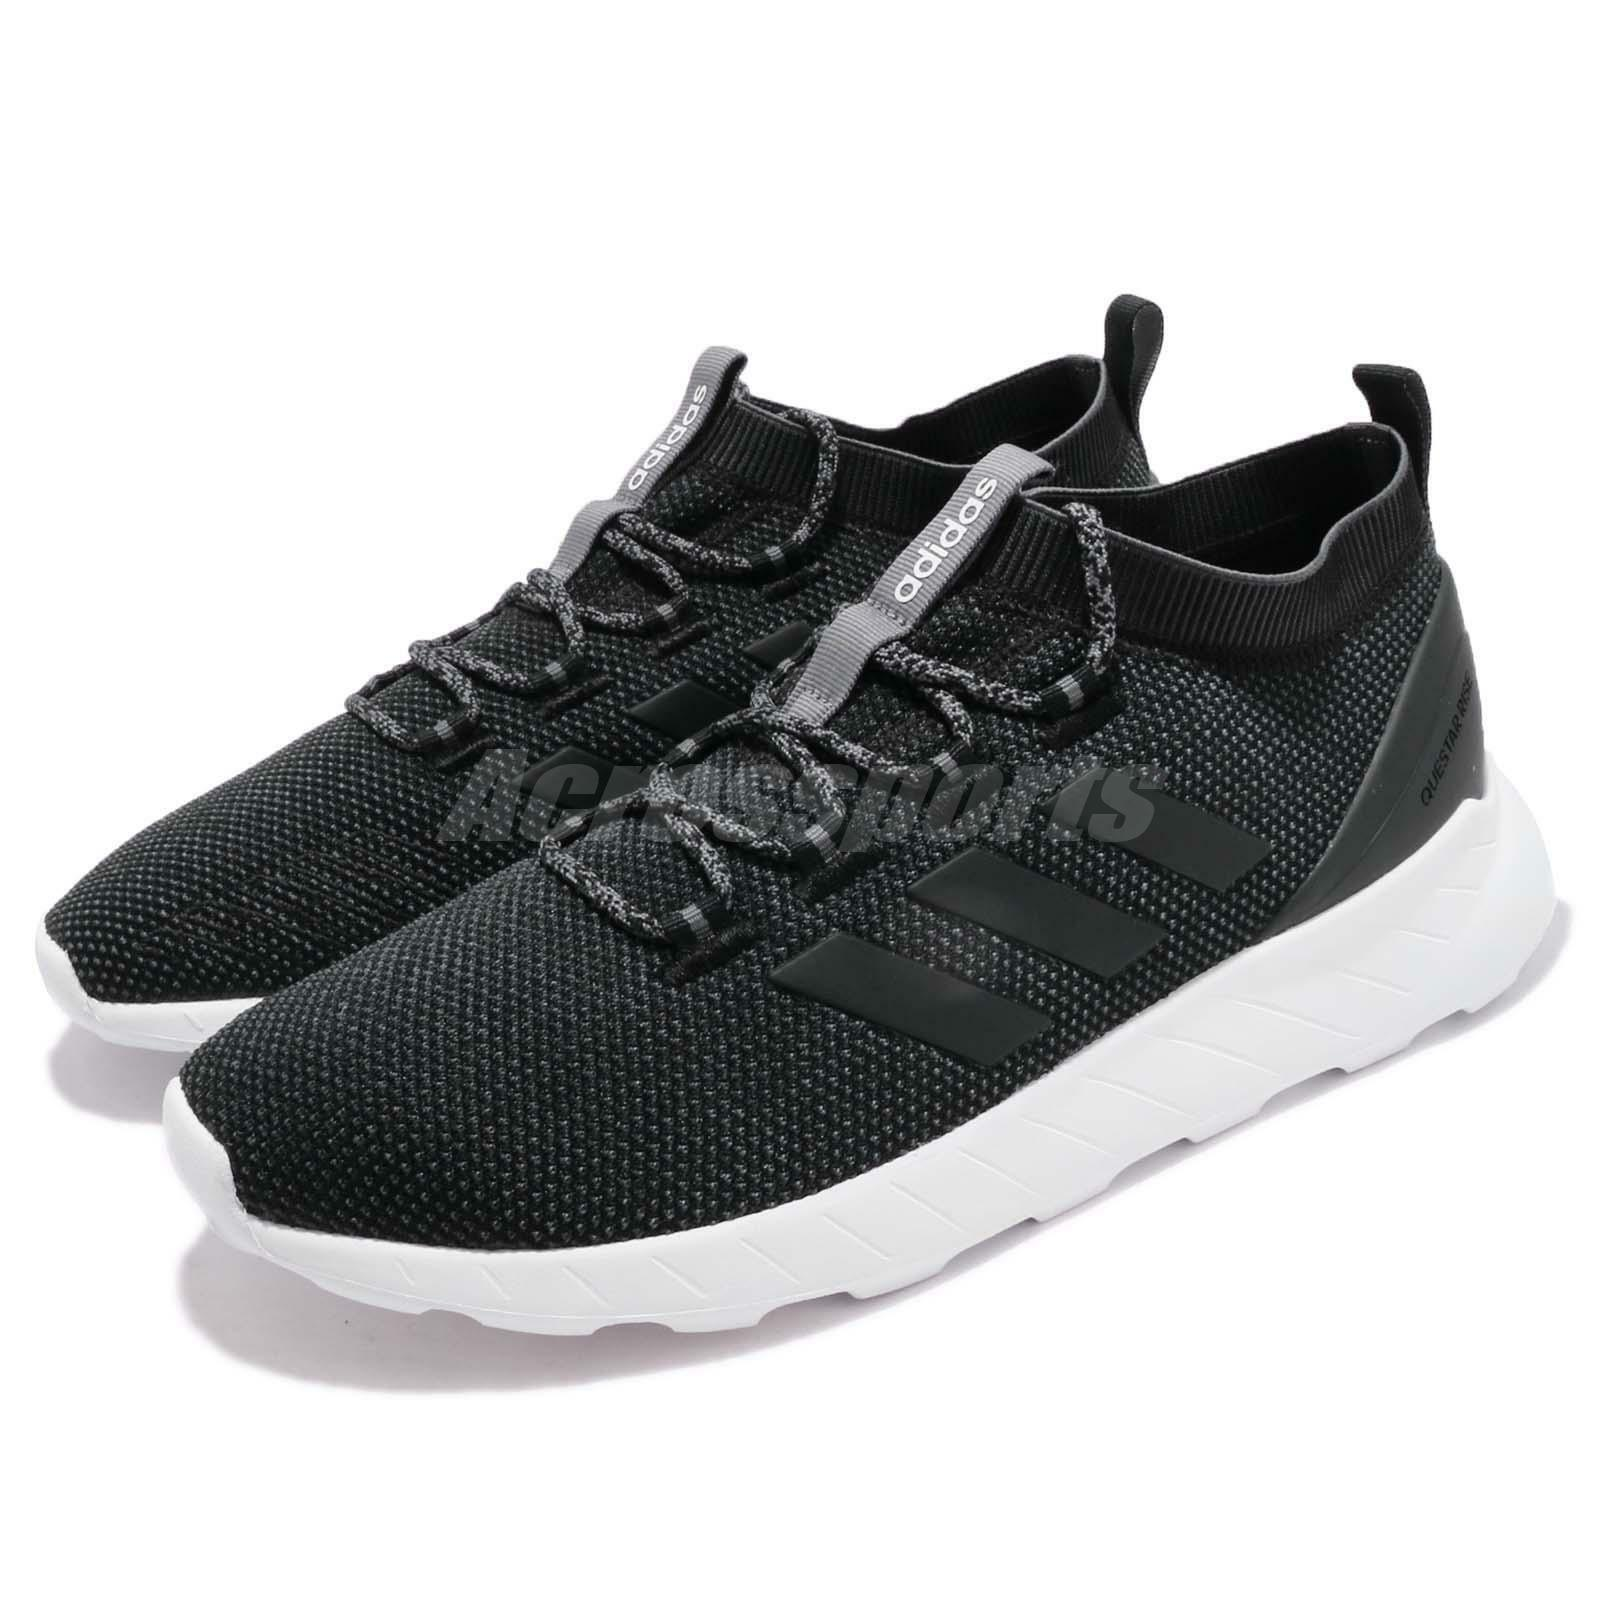 adidas Questar Rise Black Grey White Men BB7183 Running Casual Shoes Sneakers BB7183 Men ac6d5a